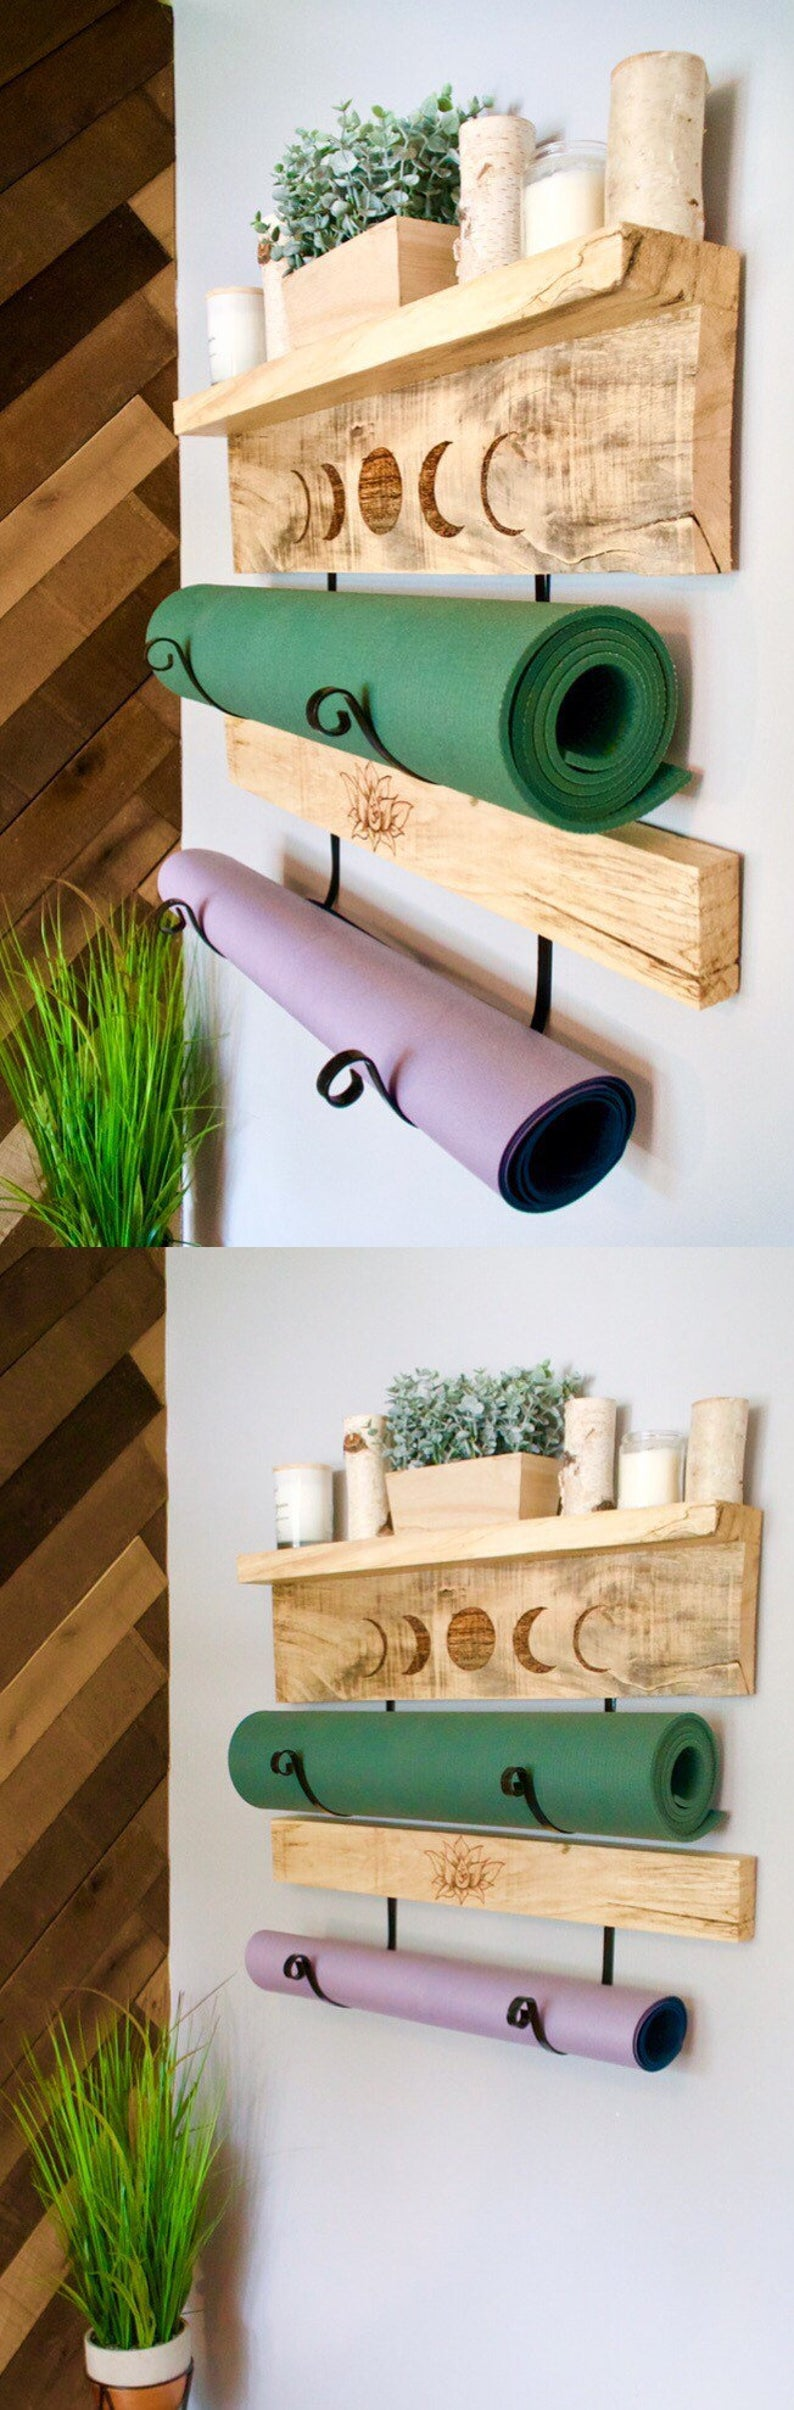 Yoga mat holder shelves